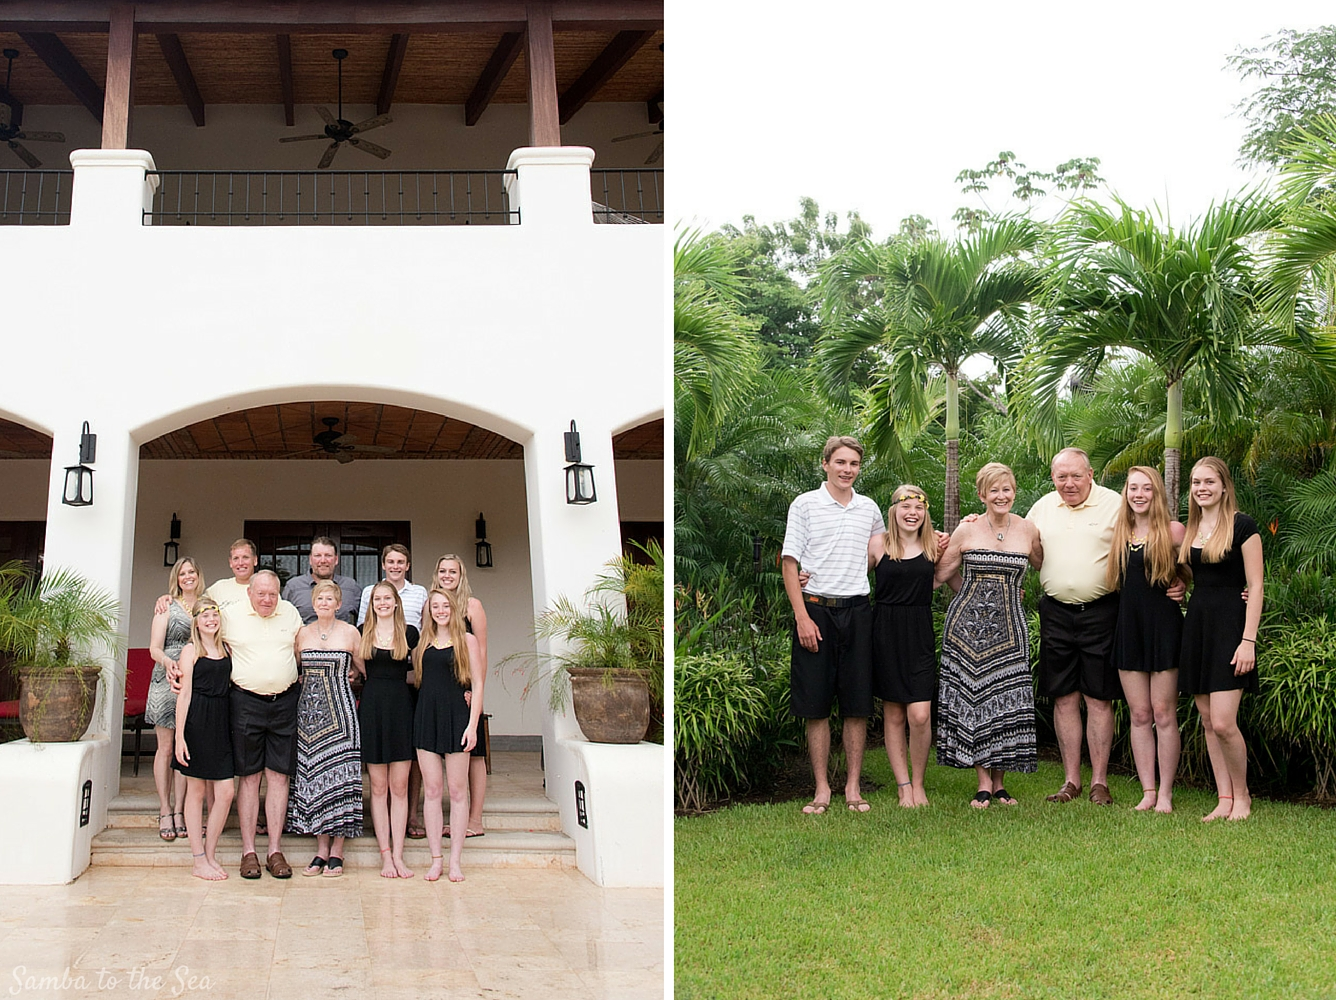 Family photos at Casa Orquidea in Hacienda Pinilla, Costa Rica. Photographed by Kristen M. Brown, Samba to the Sea Photography.